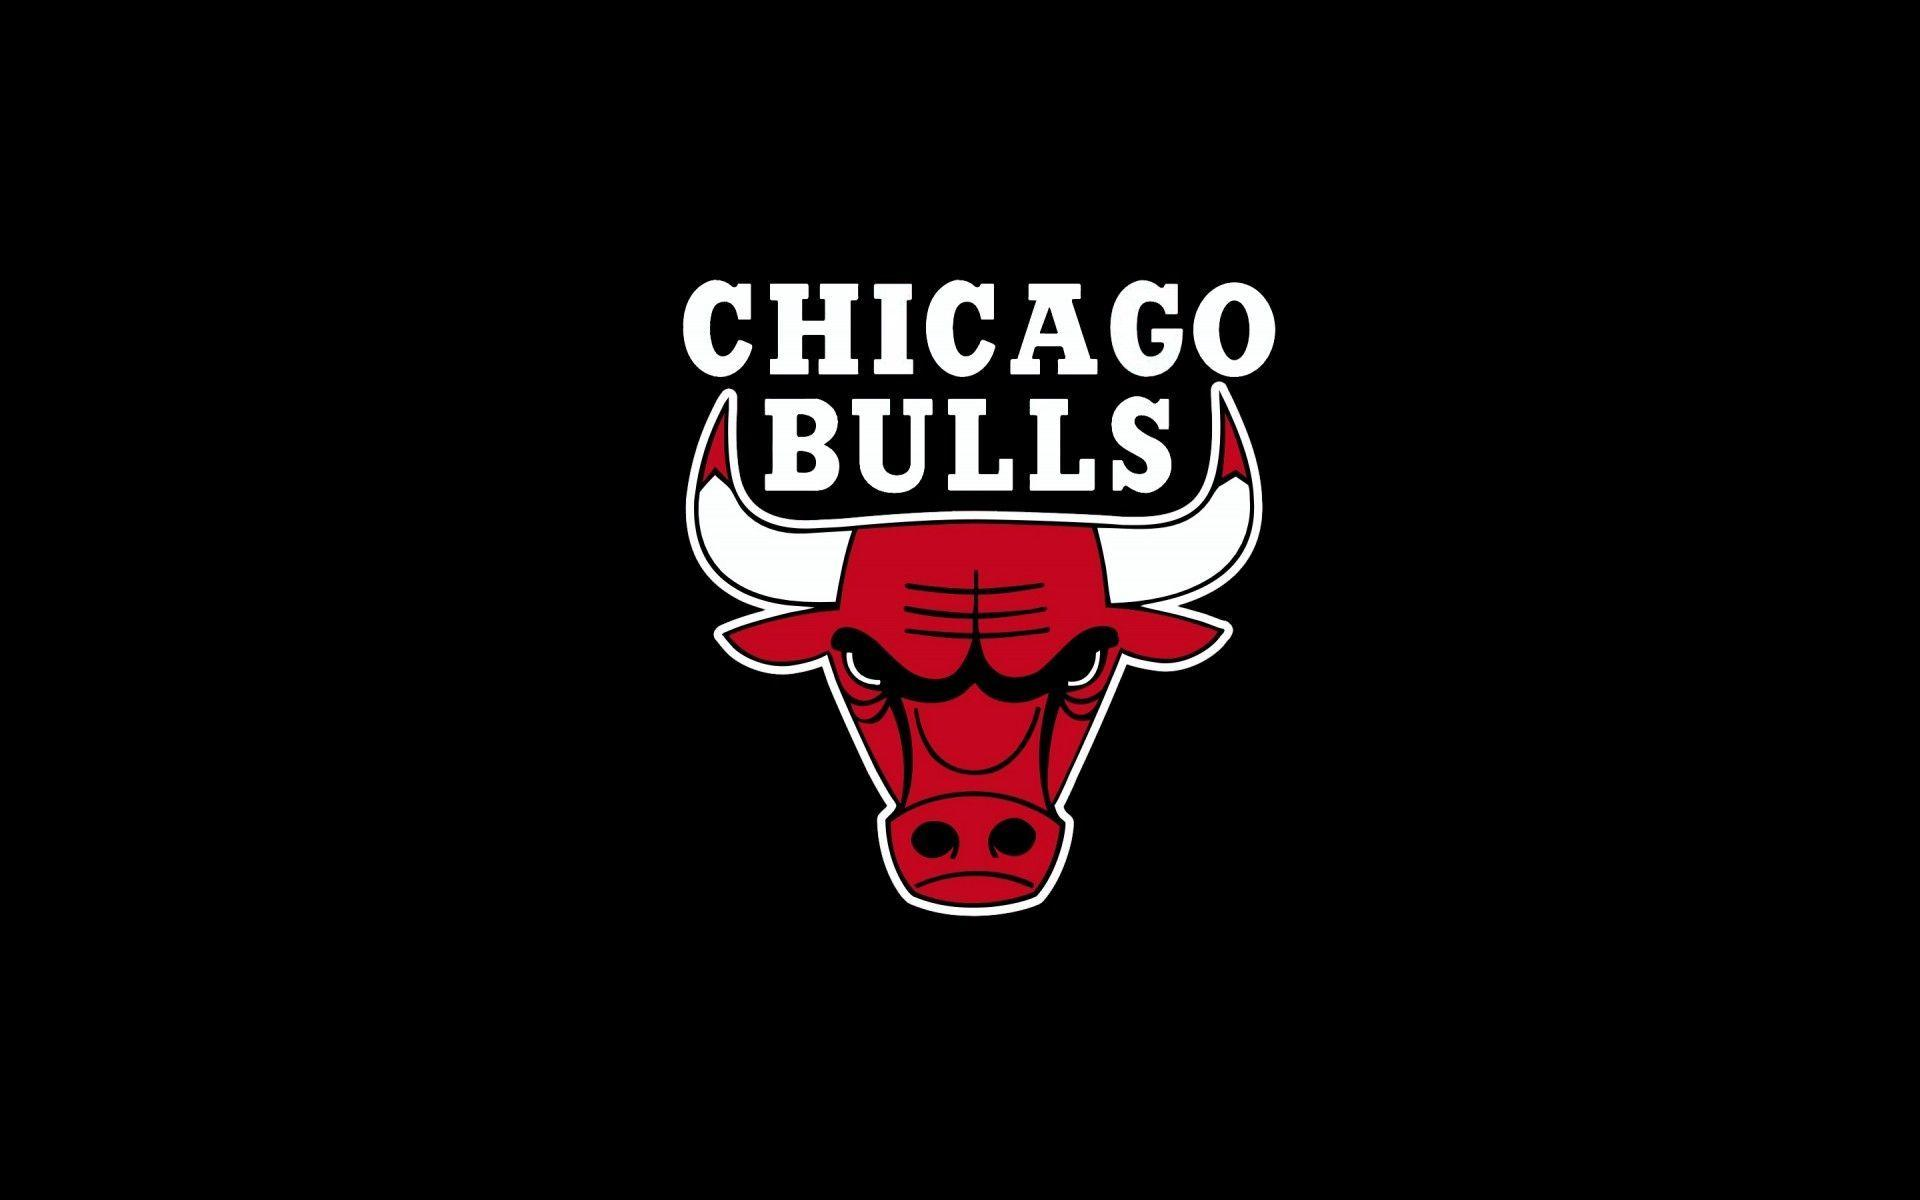 Chicago Bulls Wallpapers - Full HD wallpaper search